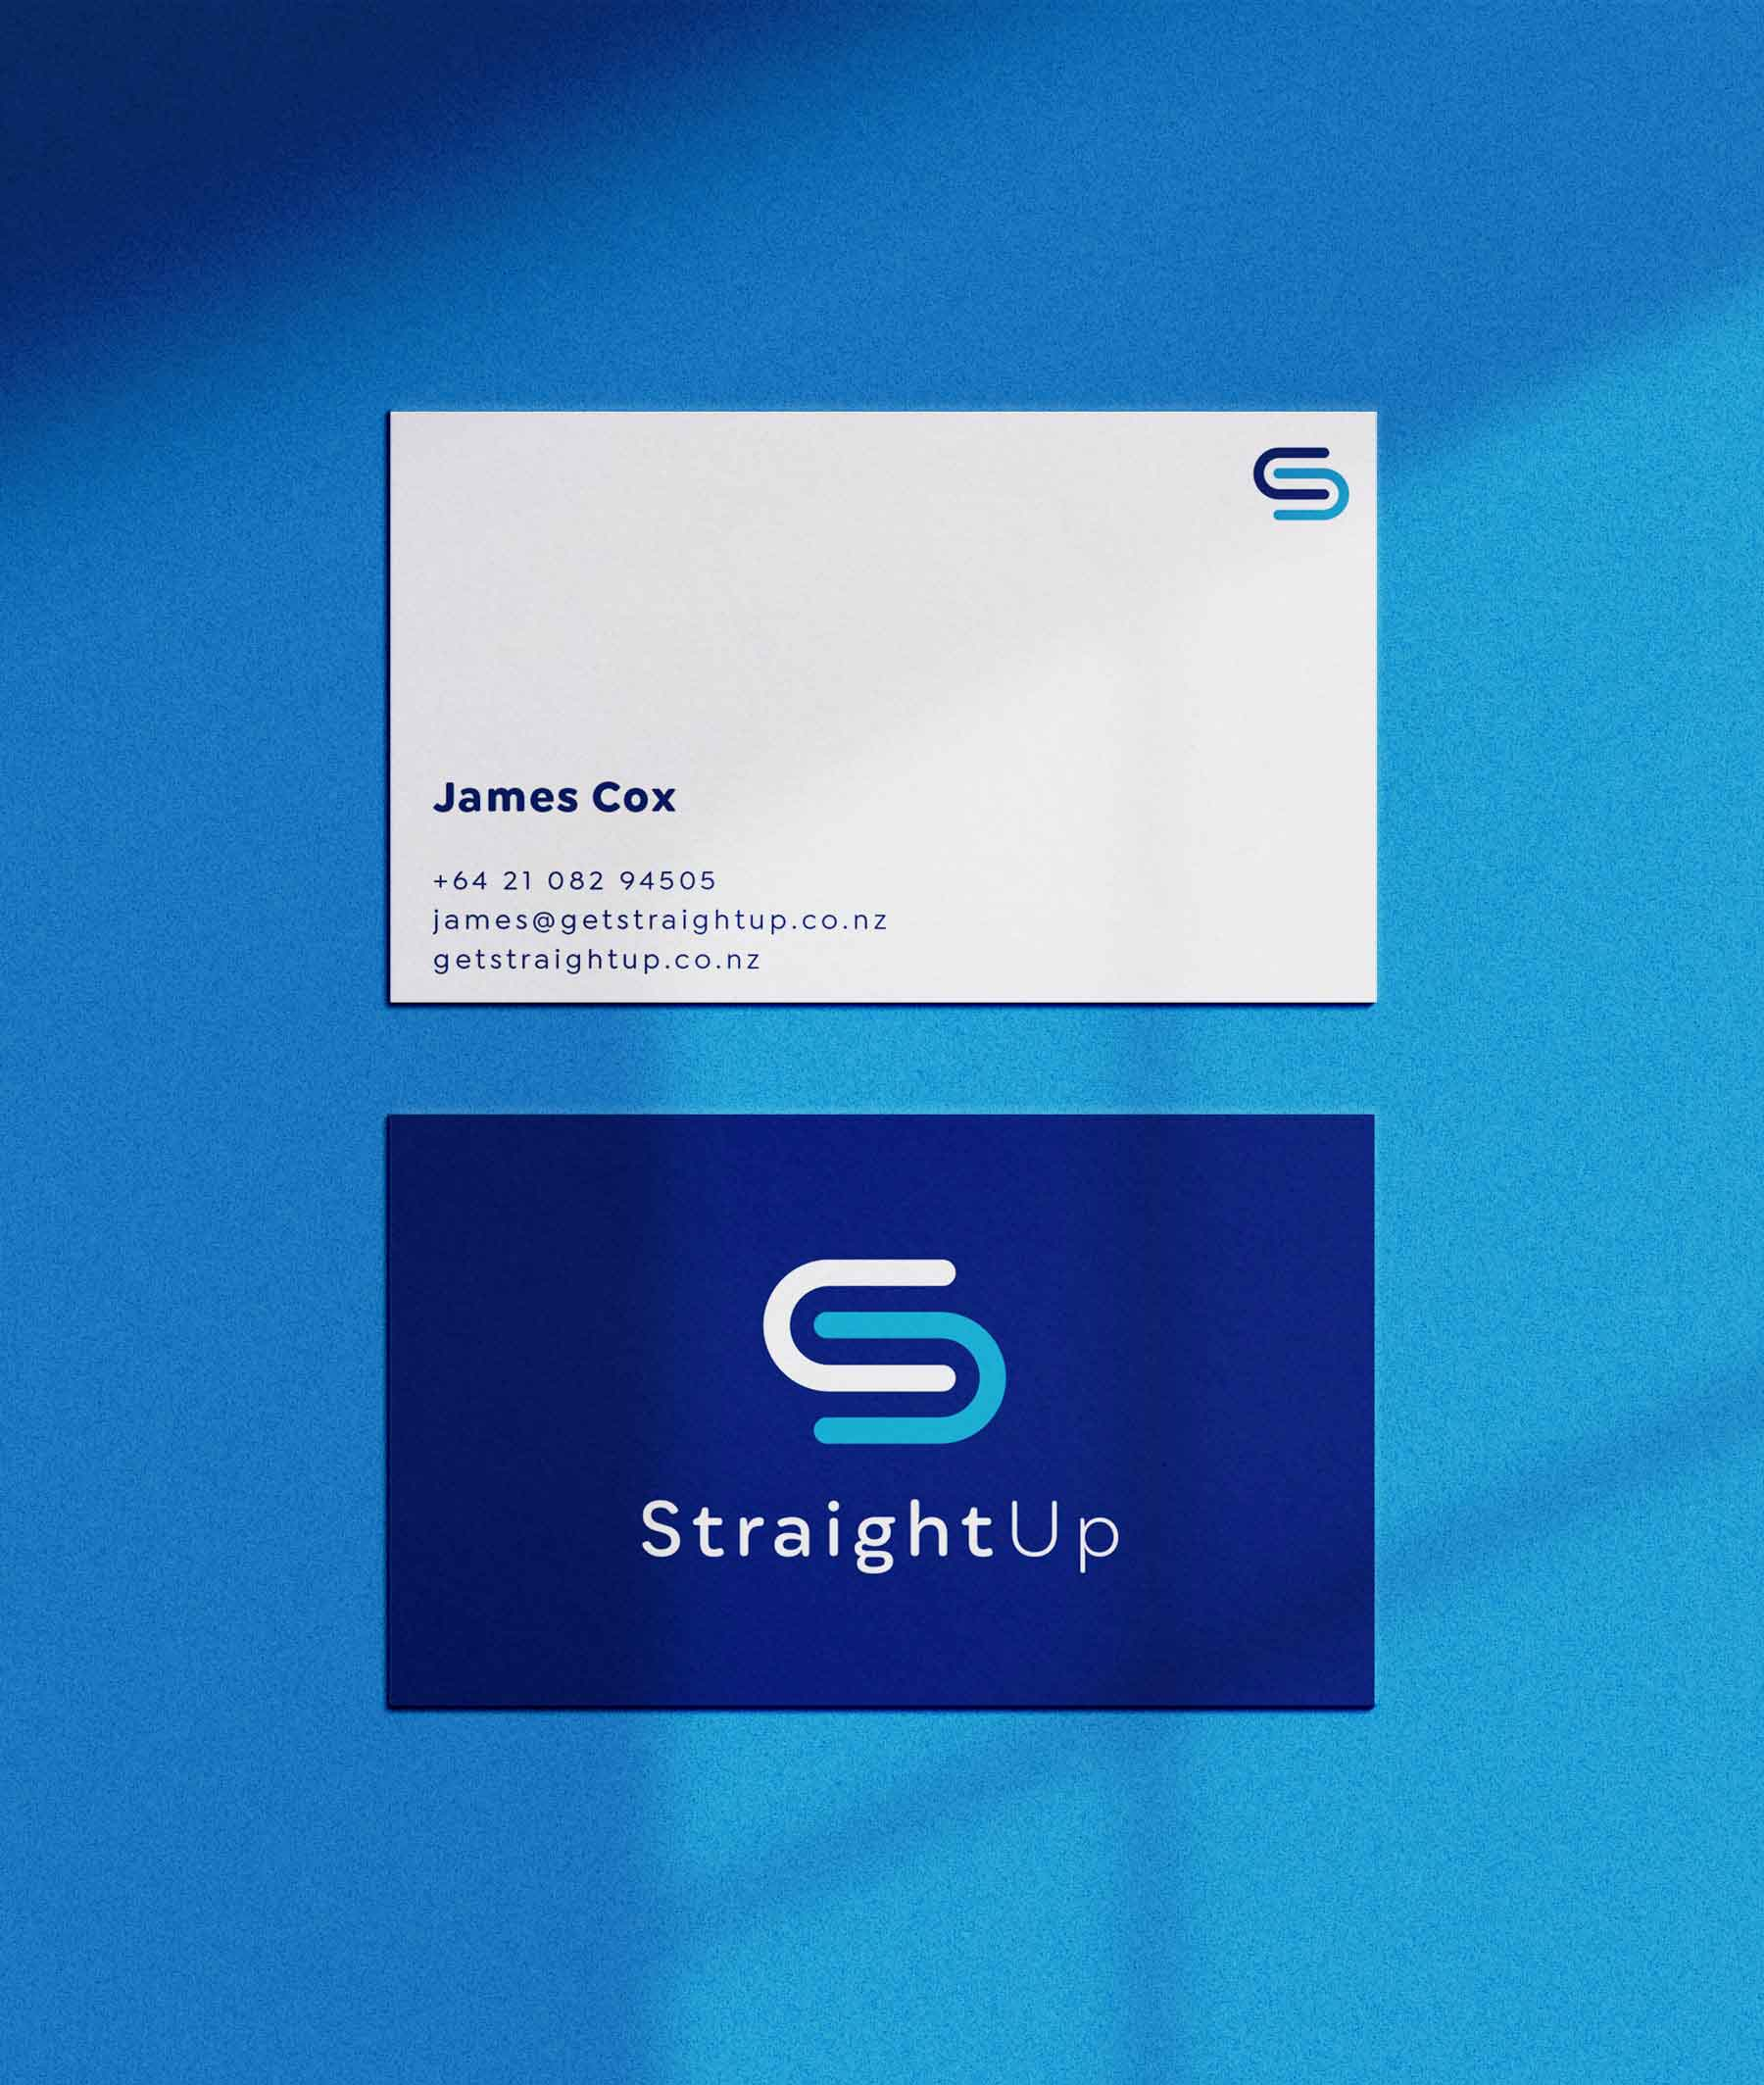 Modern blue and white business cards